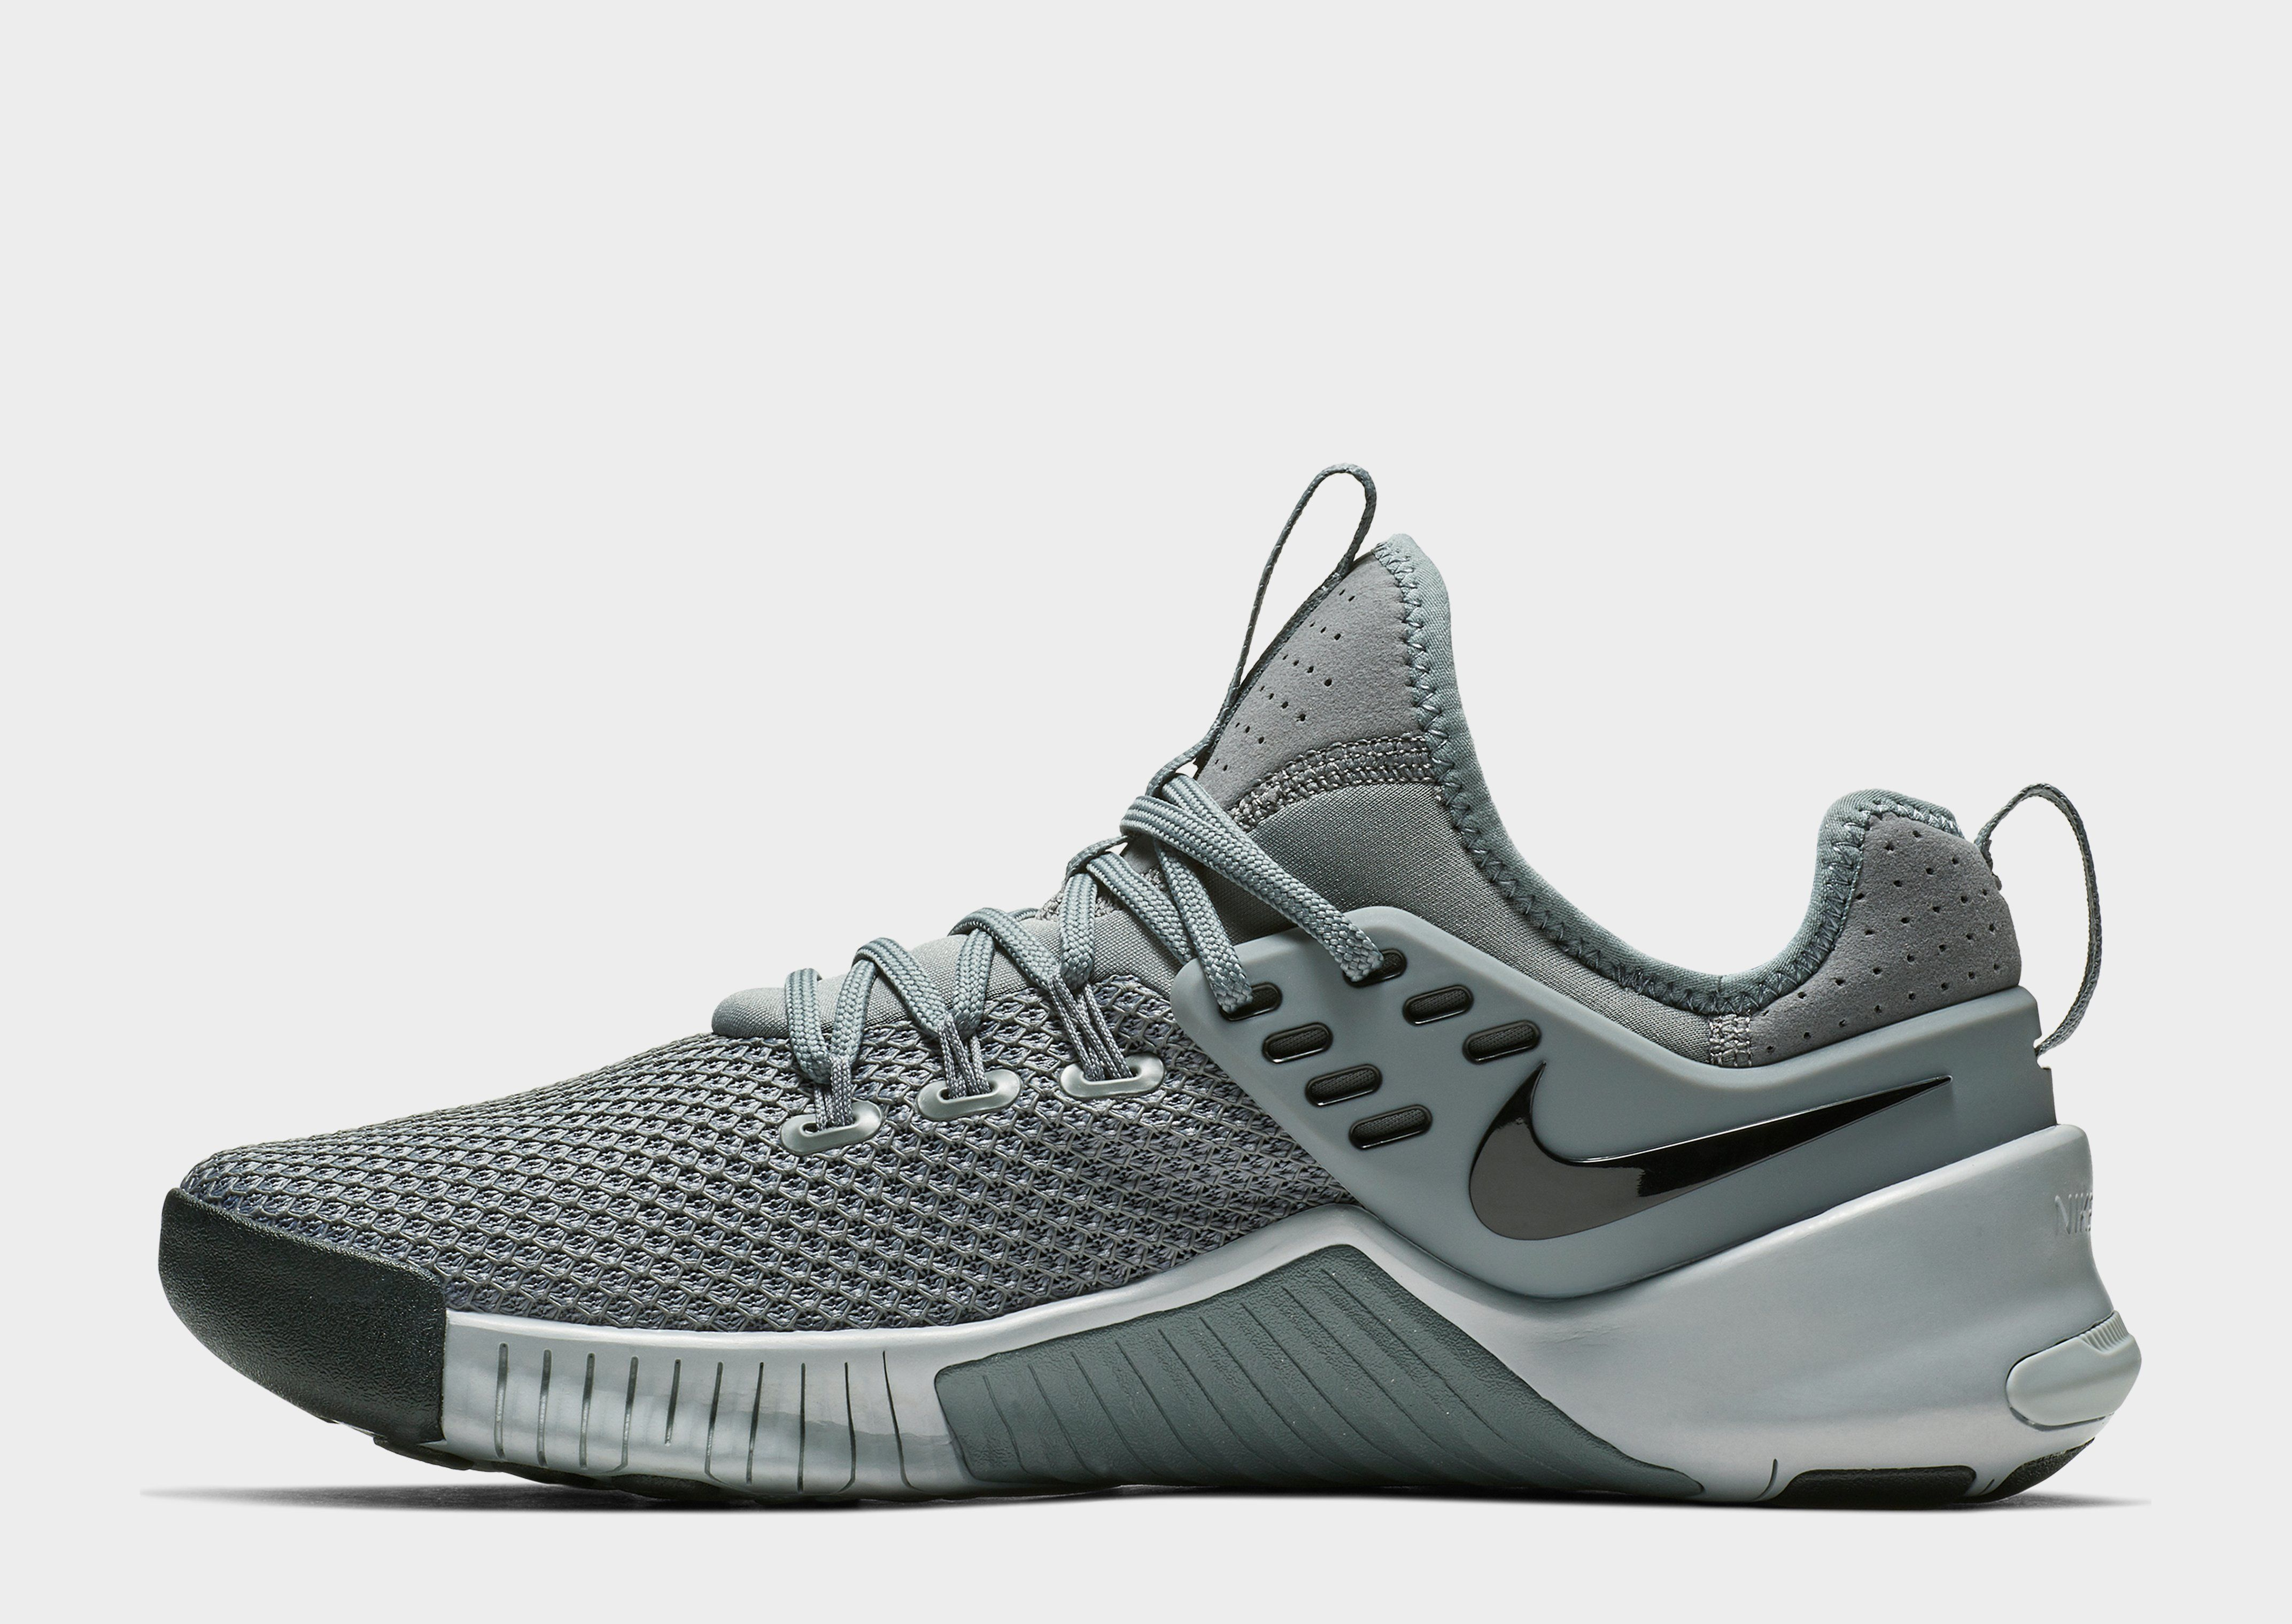 online retailer 3a807 c7c65 NIKE Nike Free x Metcon Cross-Training Weightlifting Shoe   JD Sports